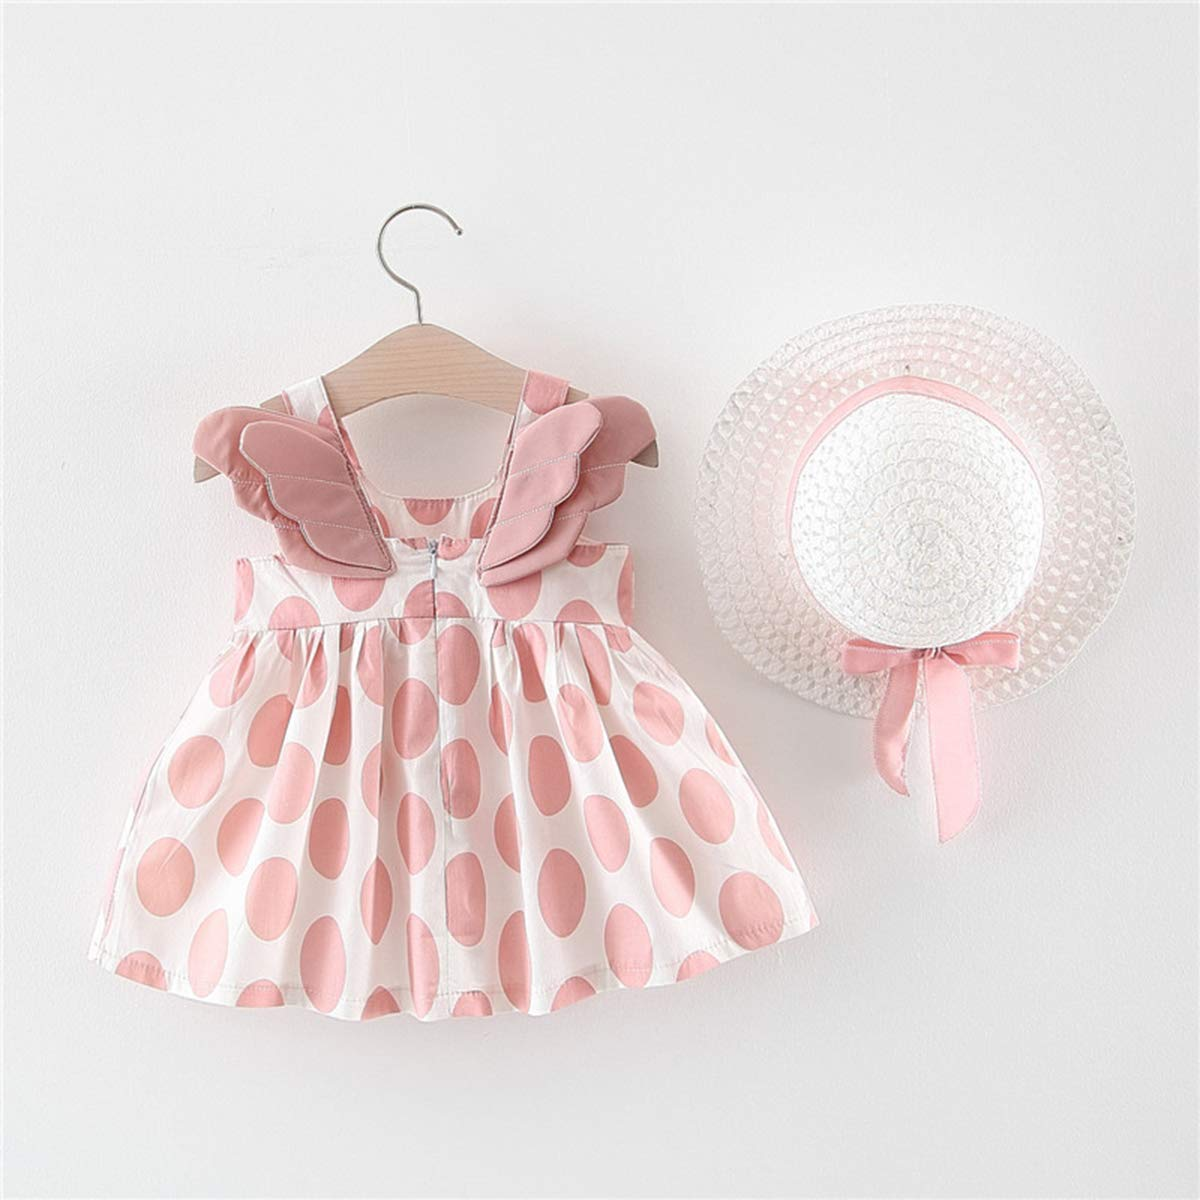 2Pcs Toddler Baby Girl Kids Summer Sleeveless Wings Back Polka Dot Strap Sundress + Sun Hat Clothes Set